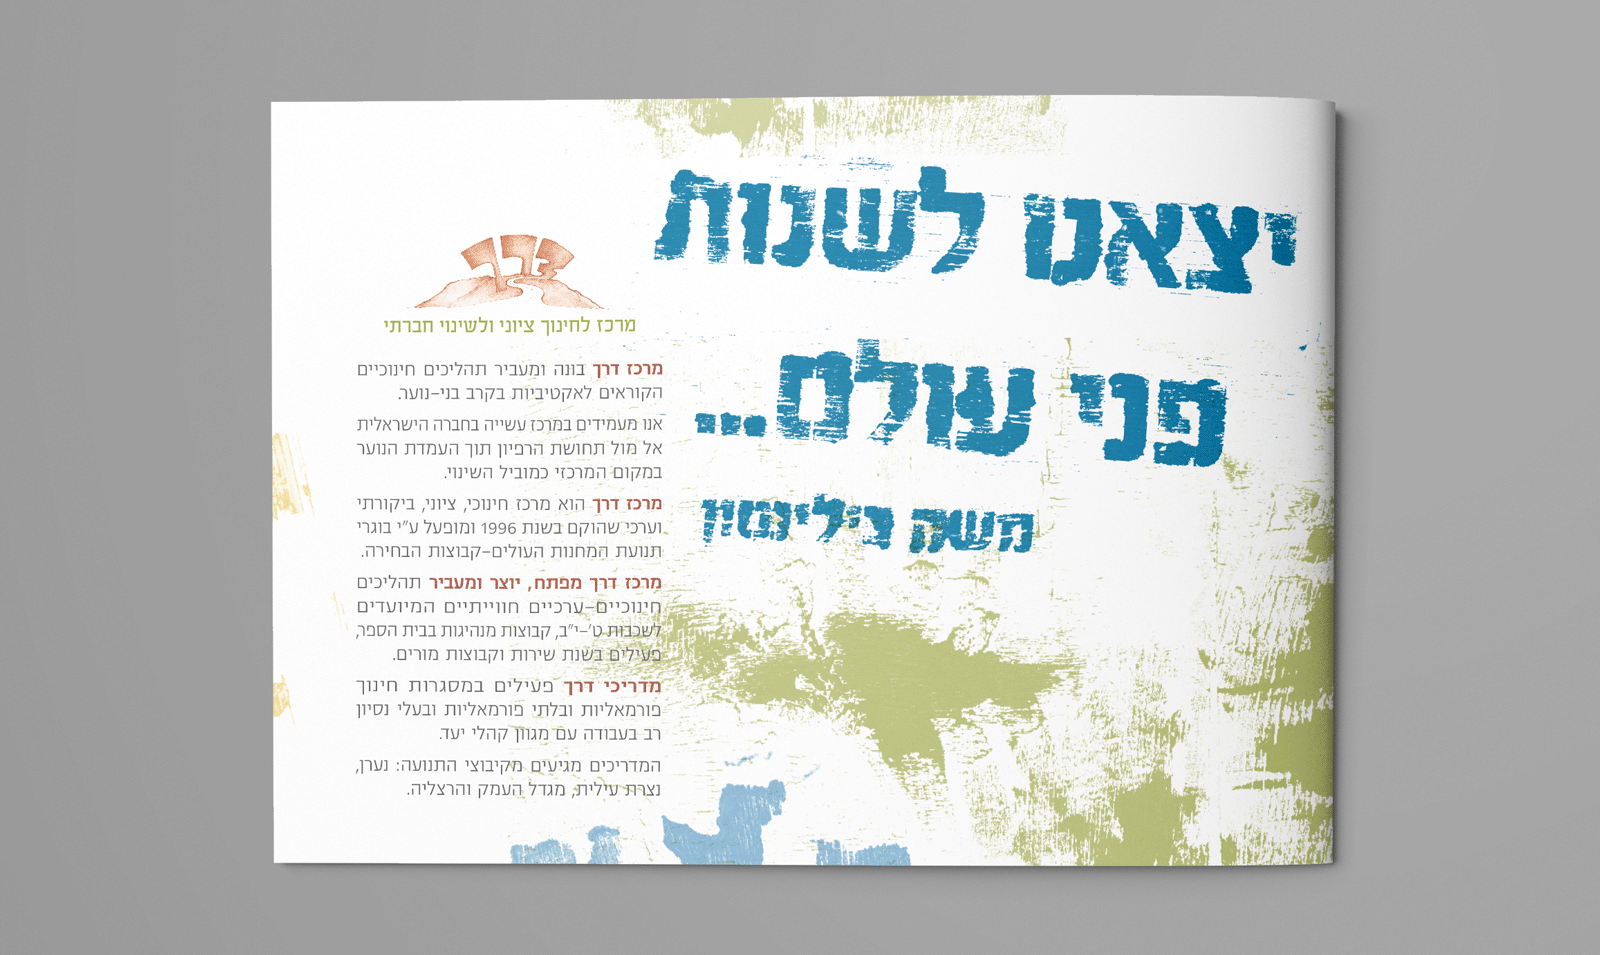 https://bigeyes.co.il/wp-content/uploads/2019/06/derech-2009-01.png